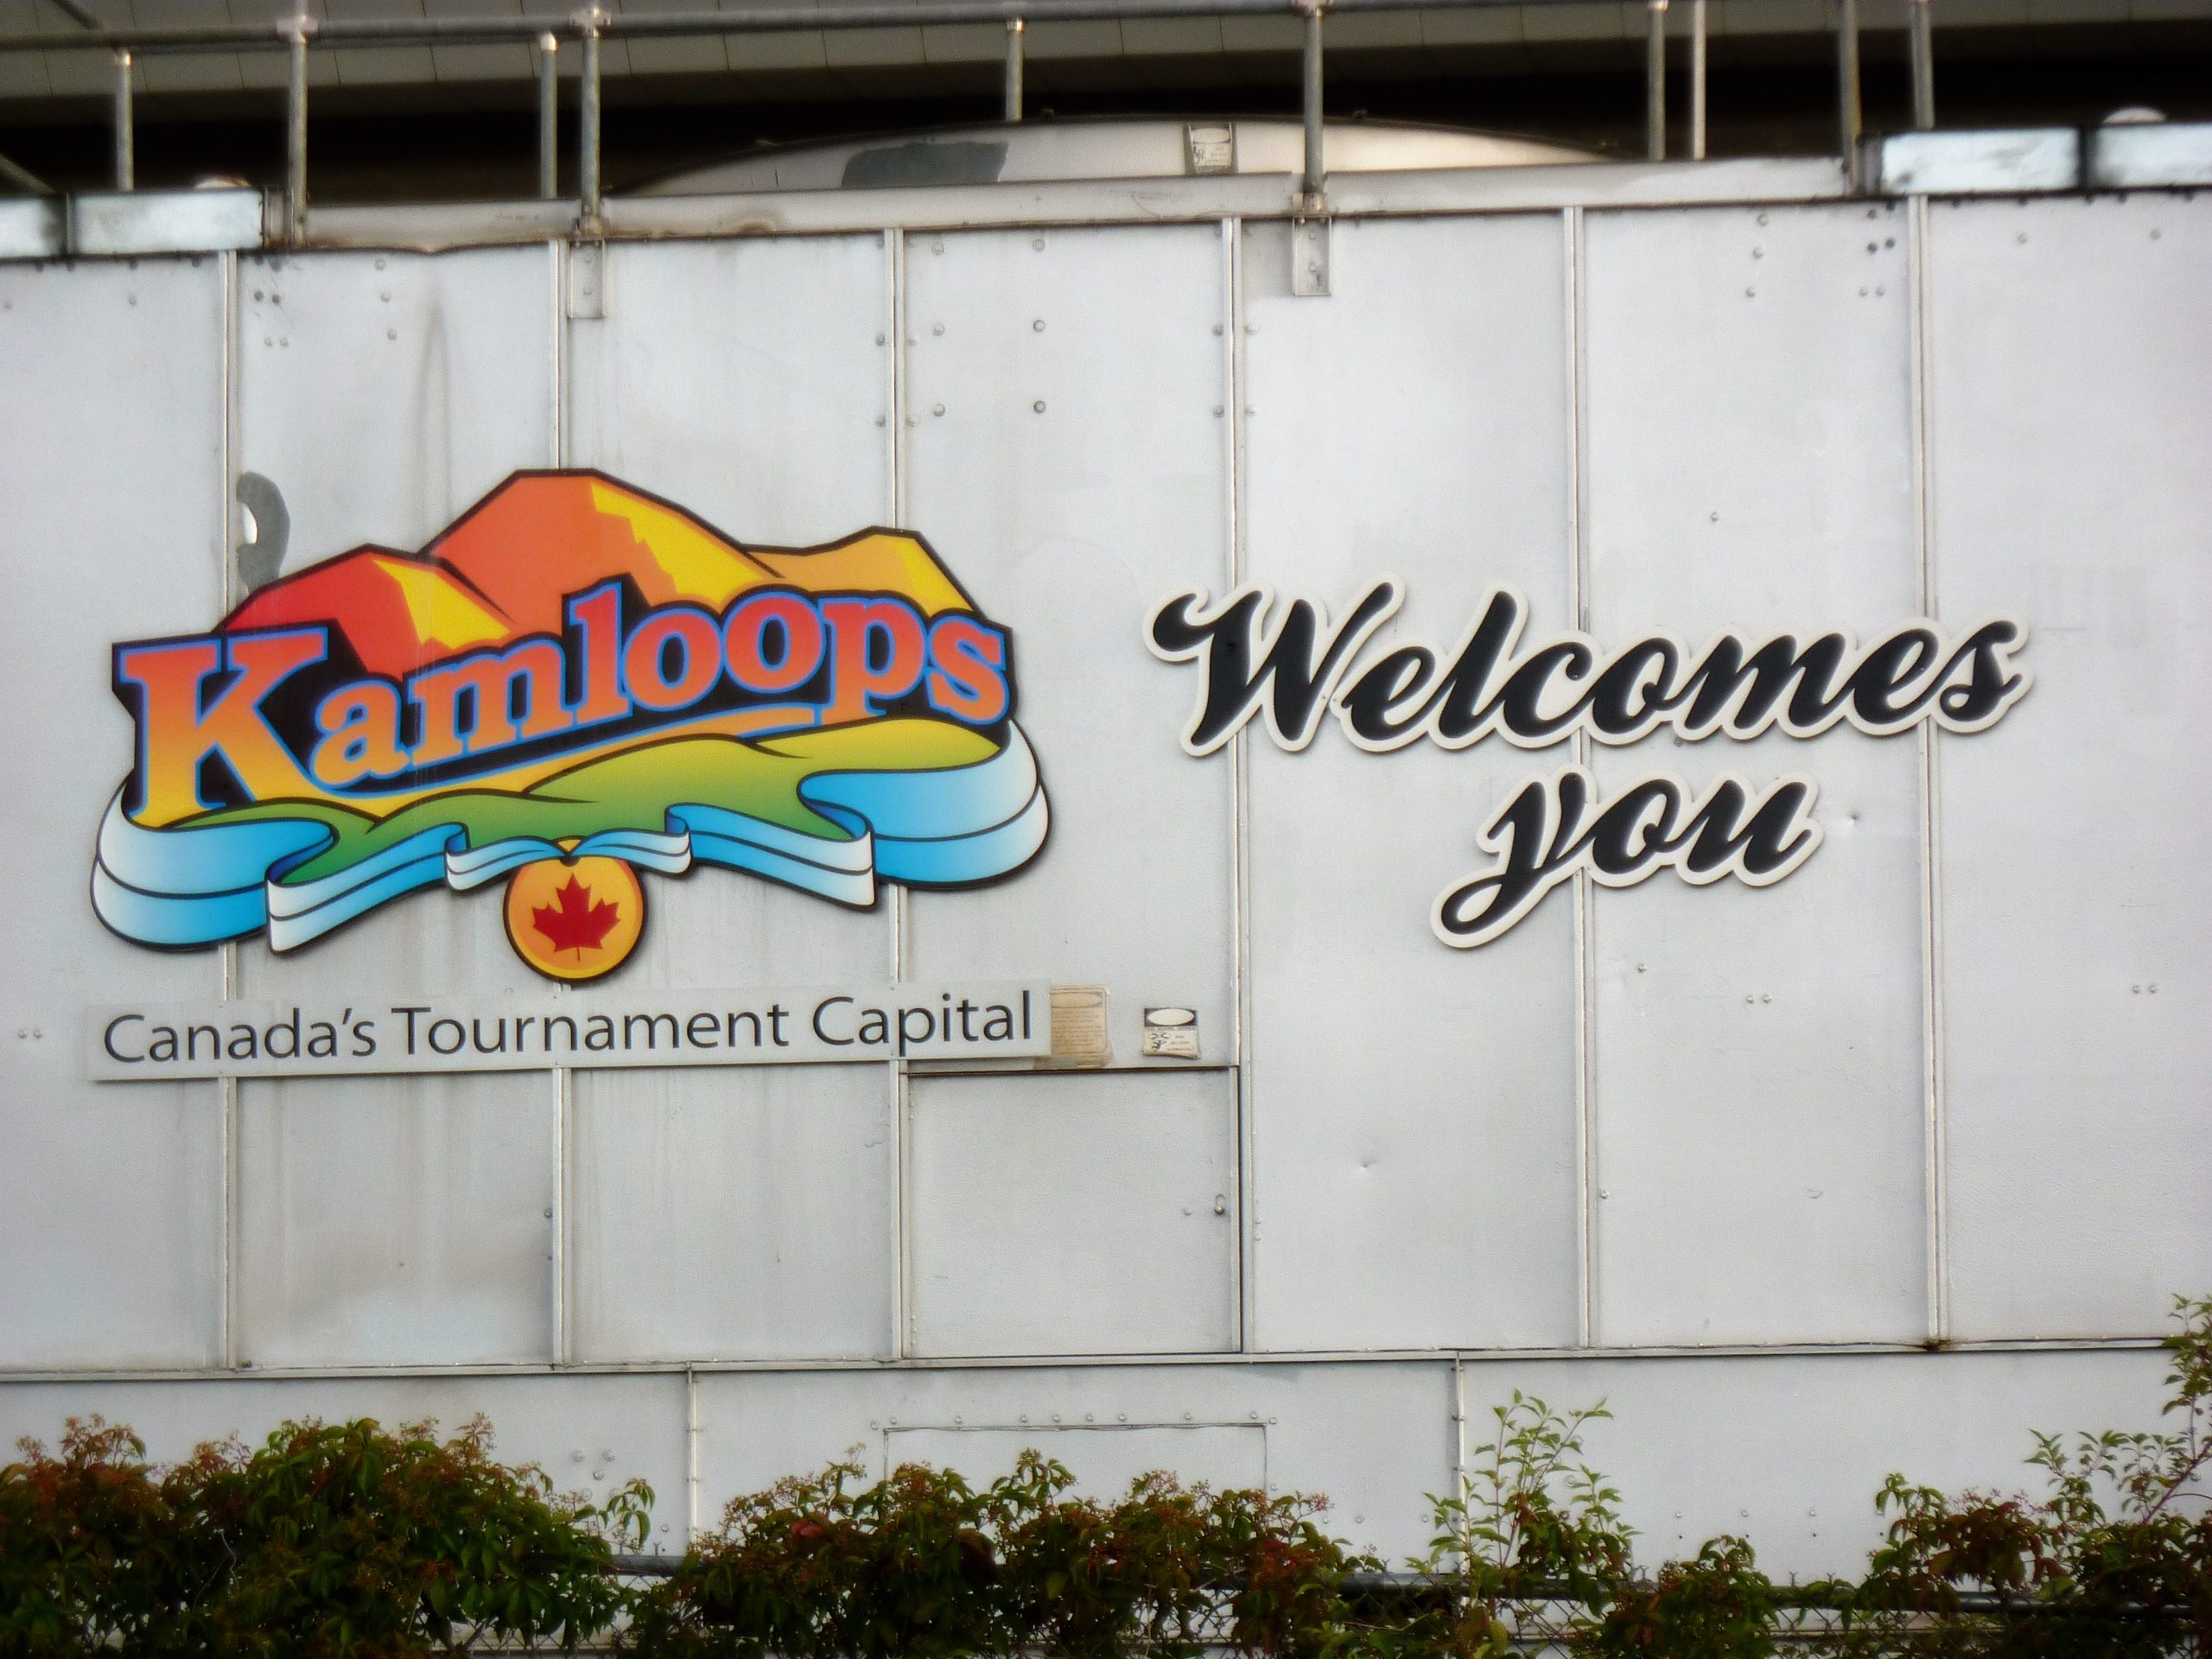 Tournament Capital facilities bringing in big economic benefits to Kamloops